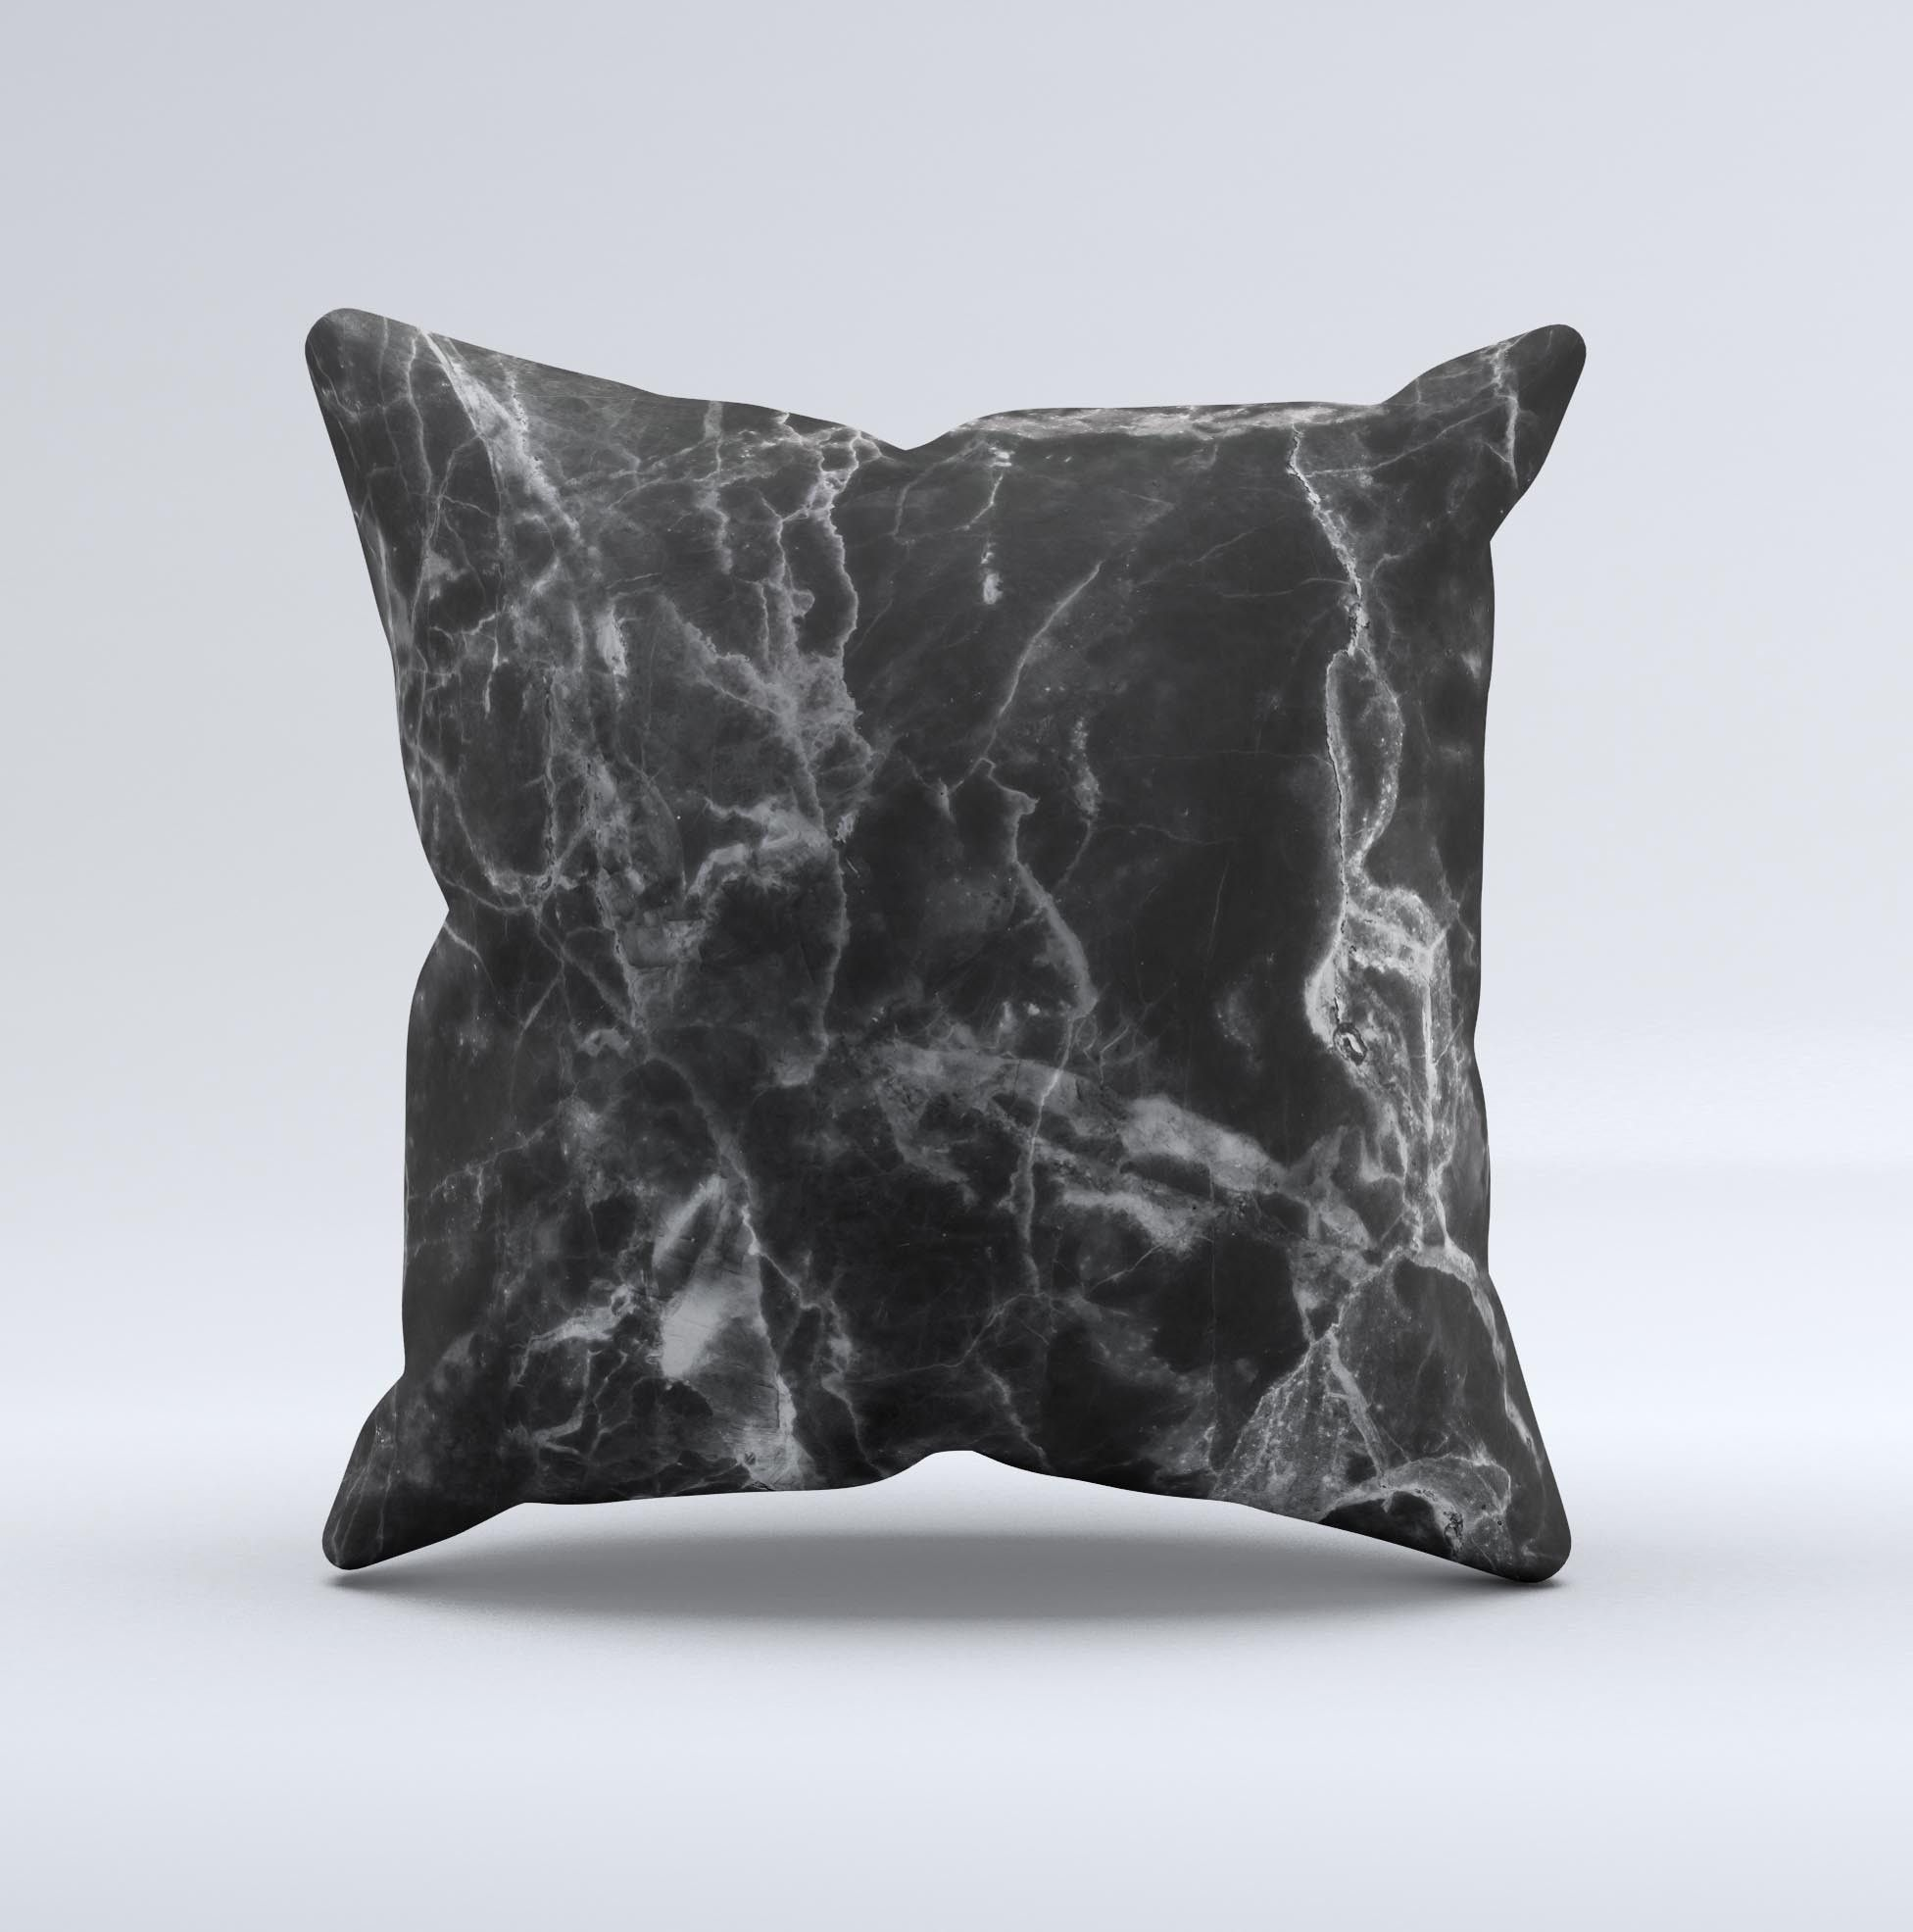 The Smooth Black Marble ink-Fuzed Decorative Throw Pillow from DesignSkinz